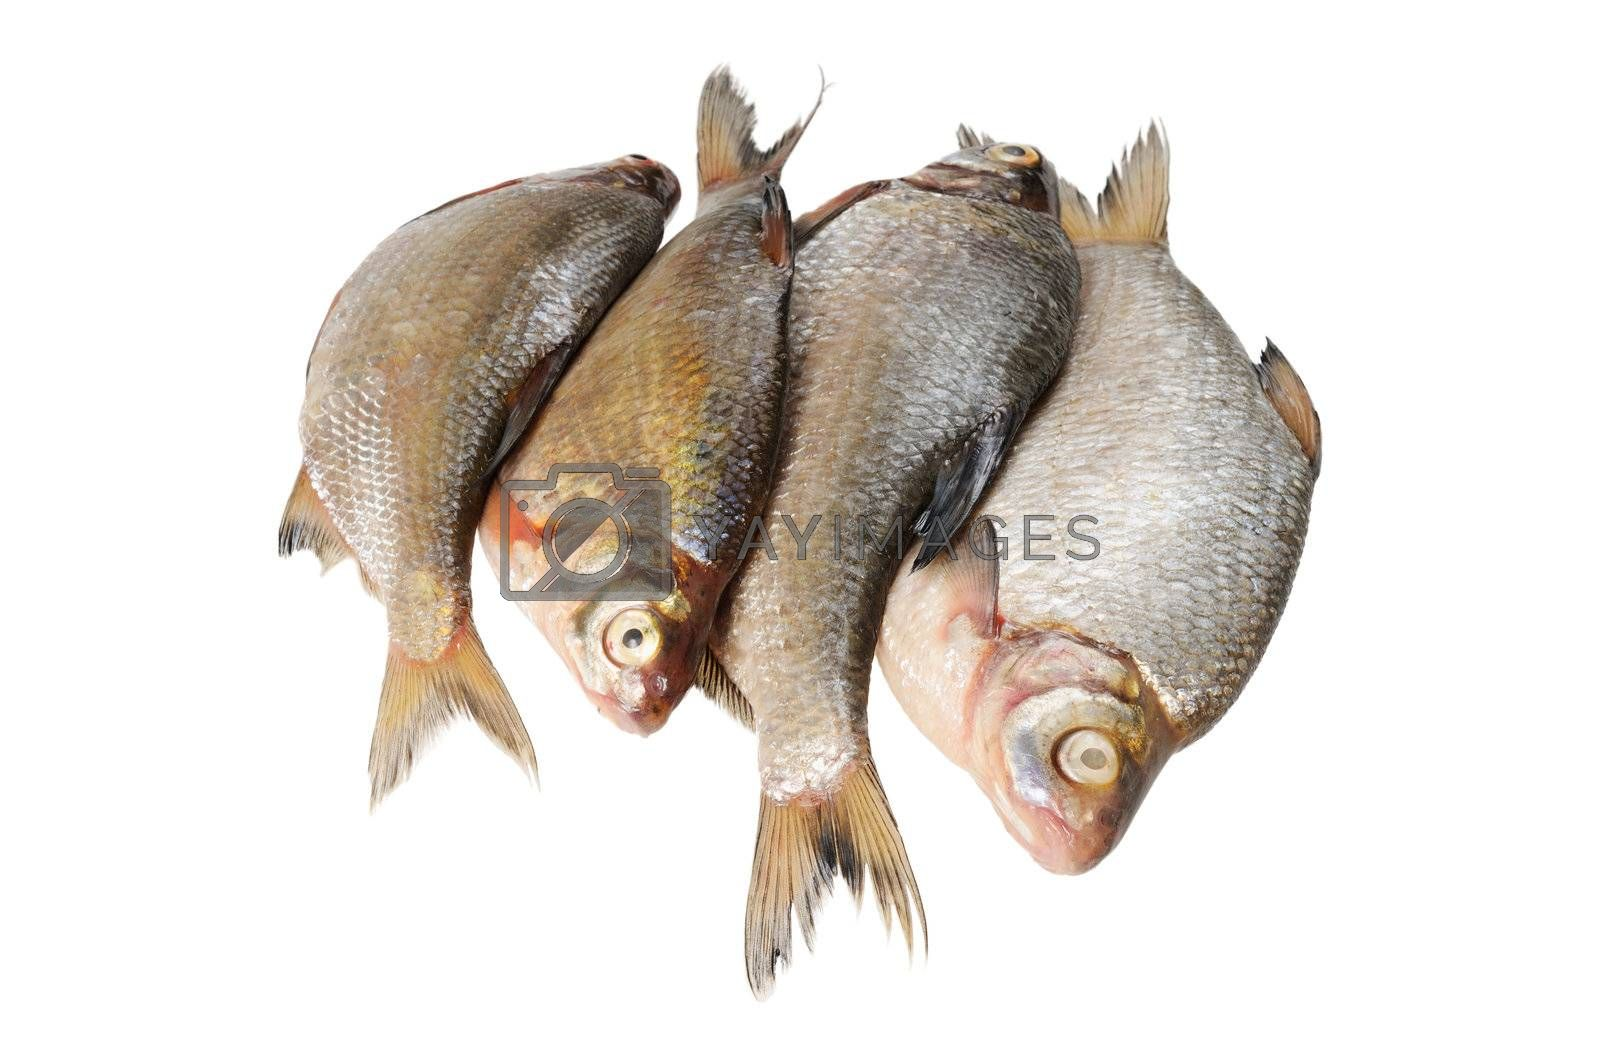 Several fresh freshwater fish. Bream and roach. Isolated on white.